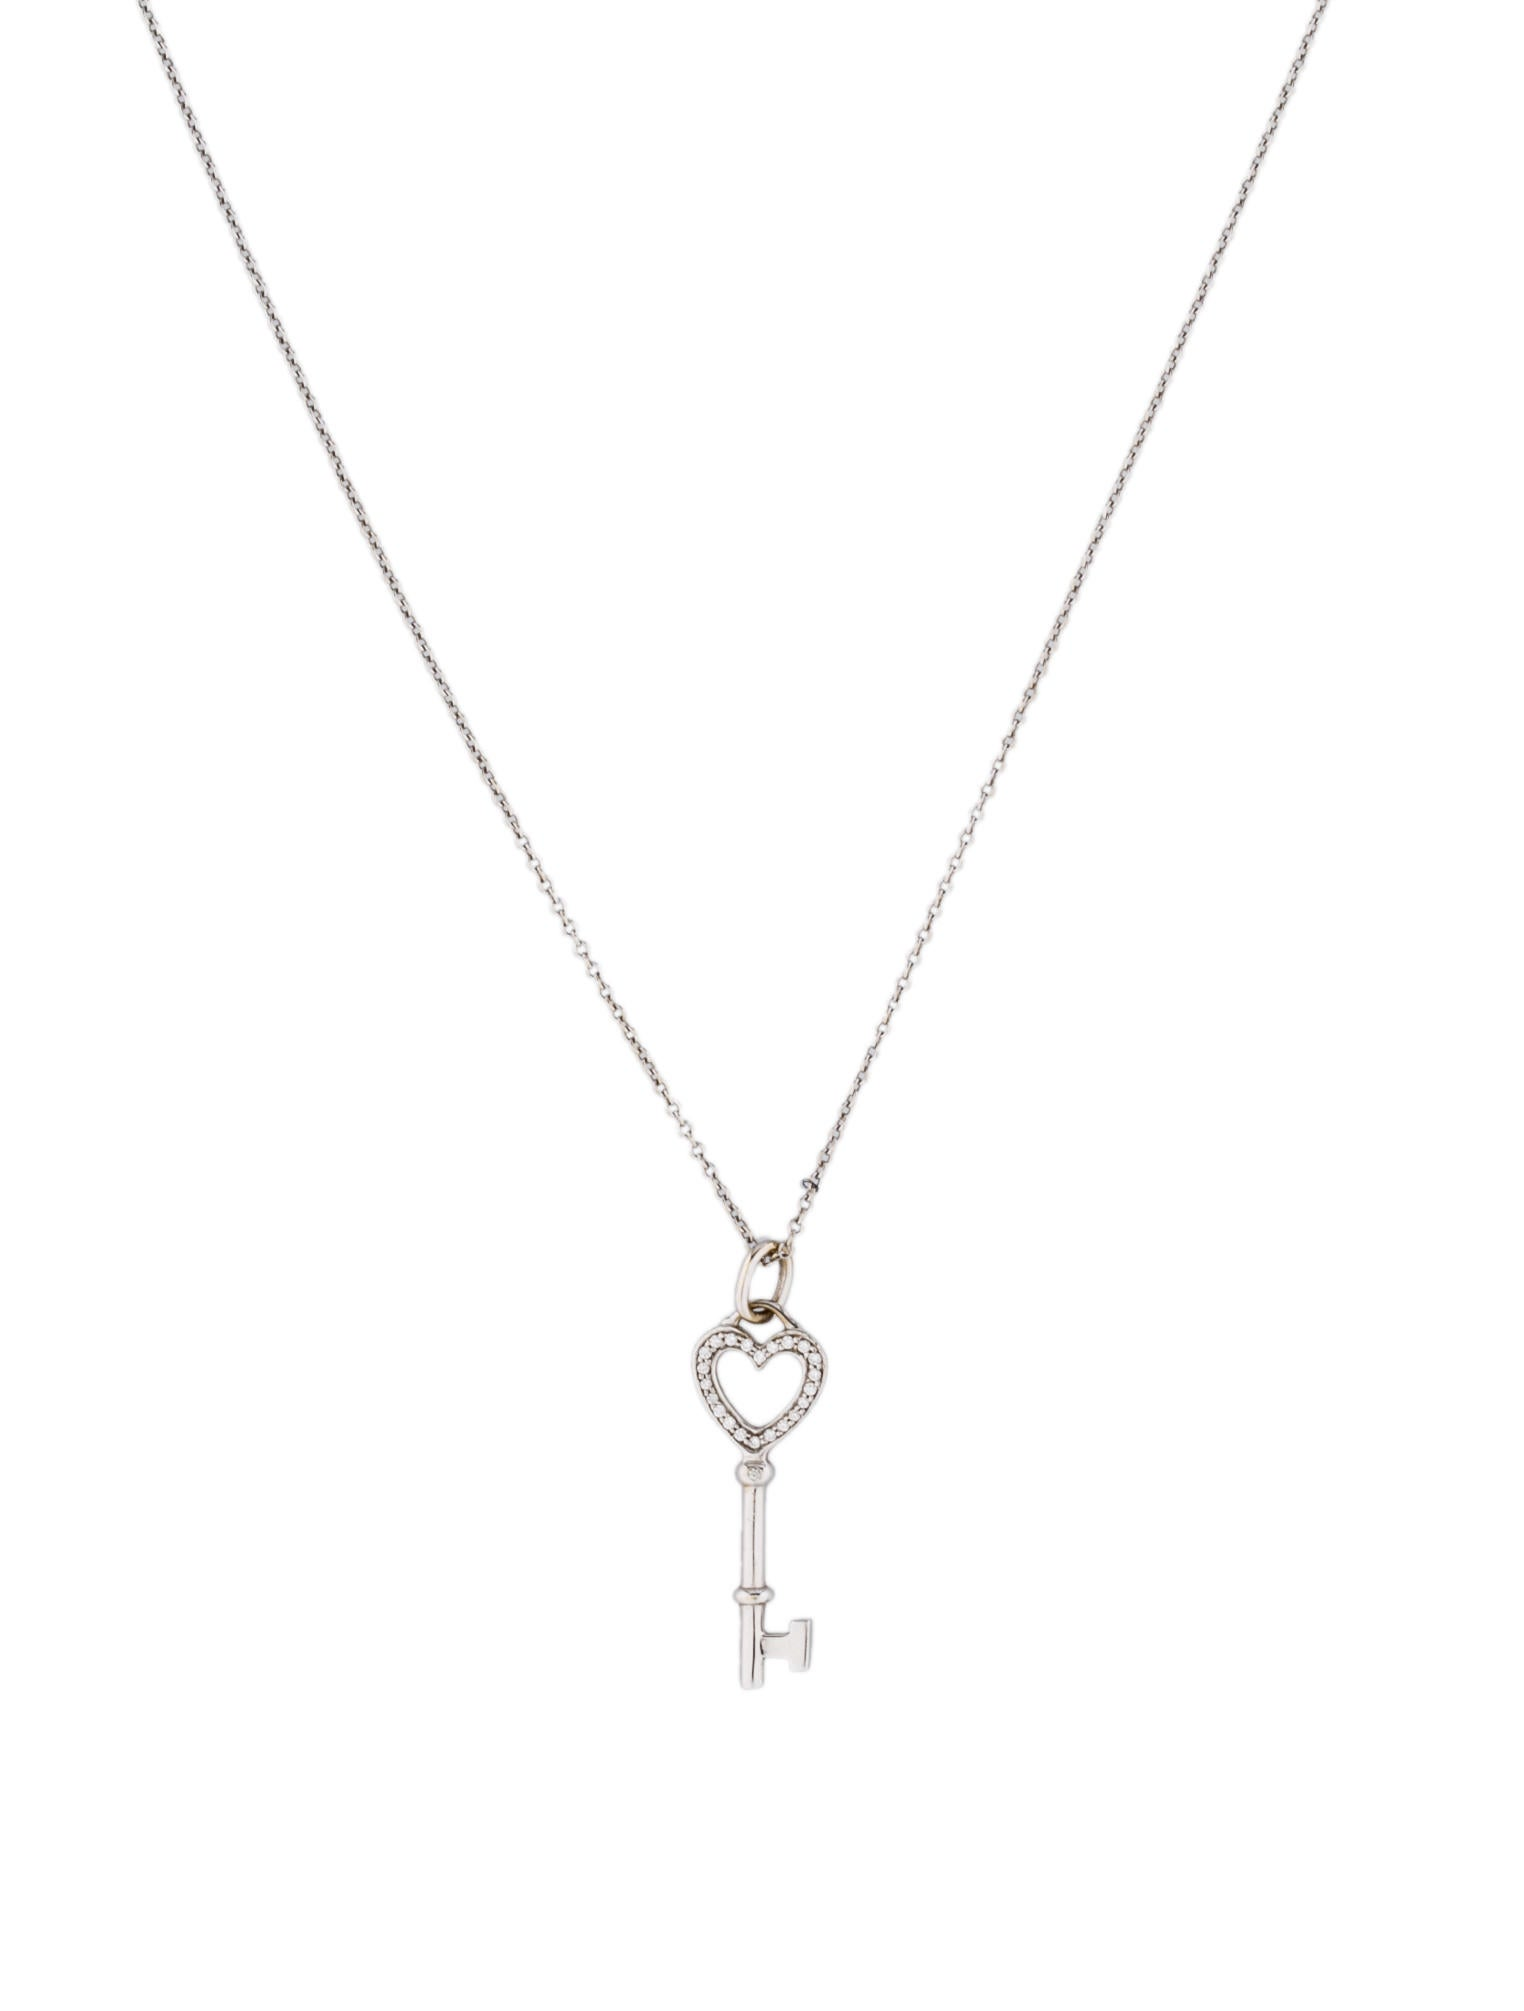 Tiffany co diamond heart key pendant necklace necklaces diamond heart key pendant necklace mozeypictures Image collections